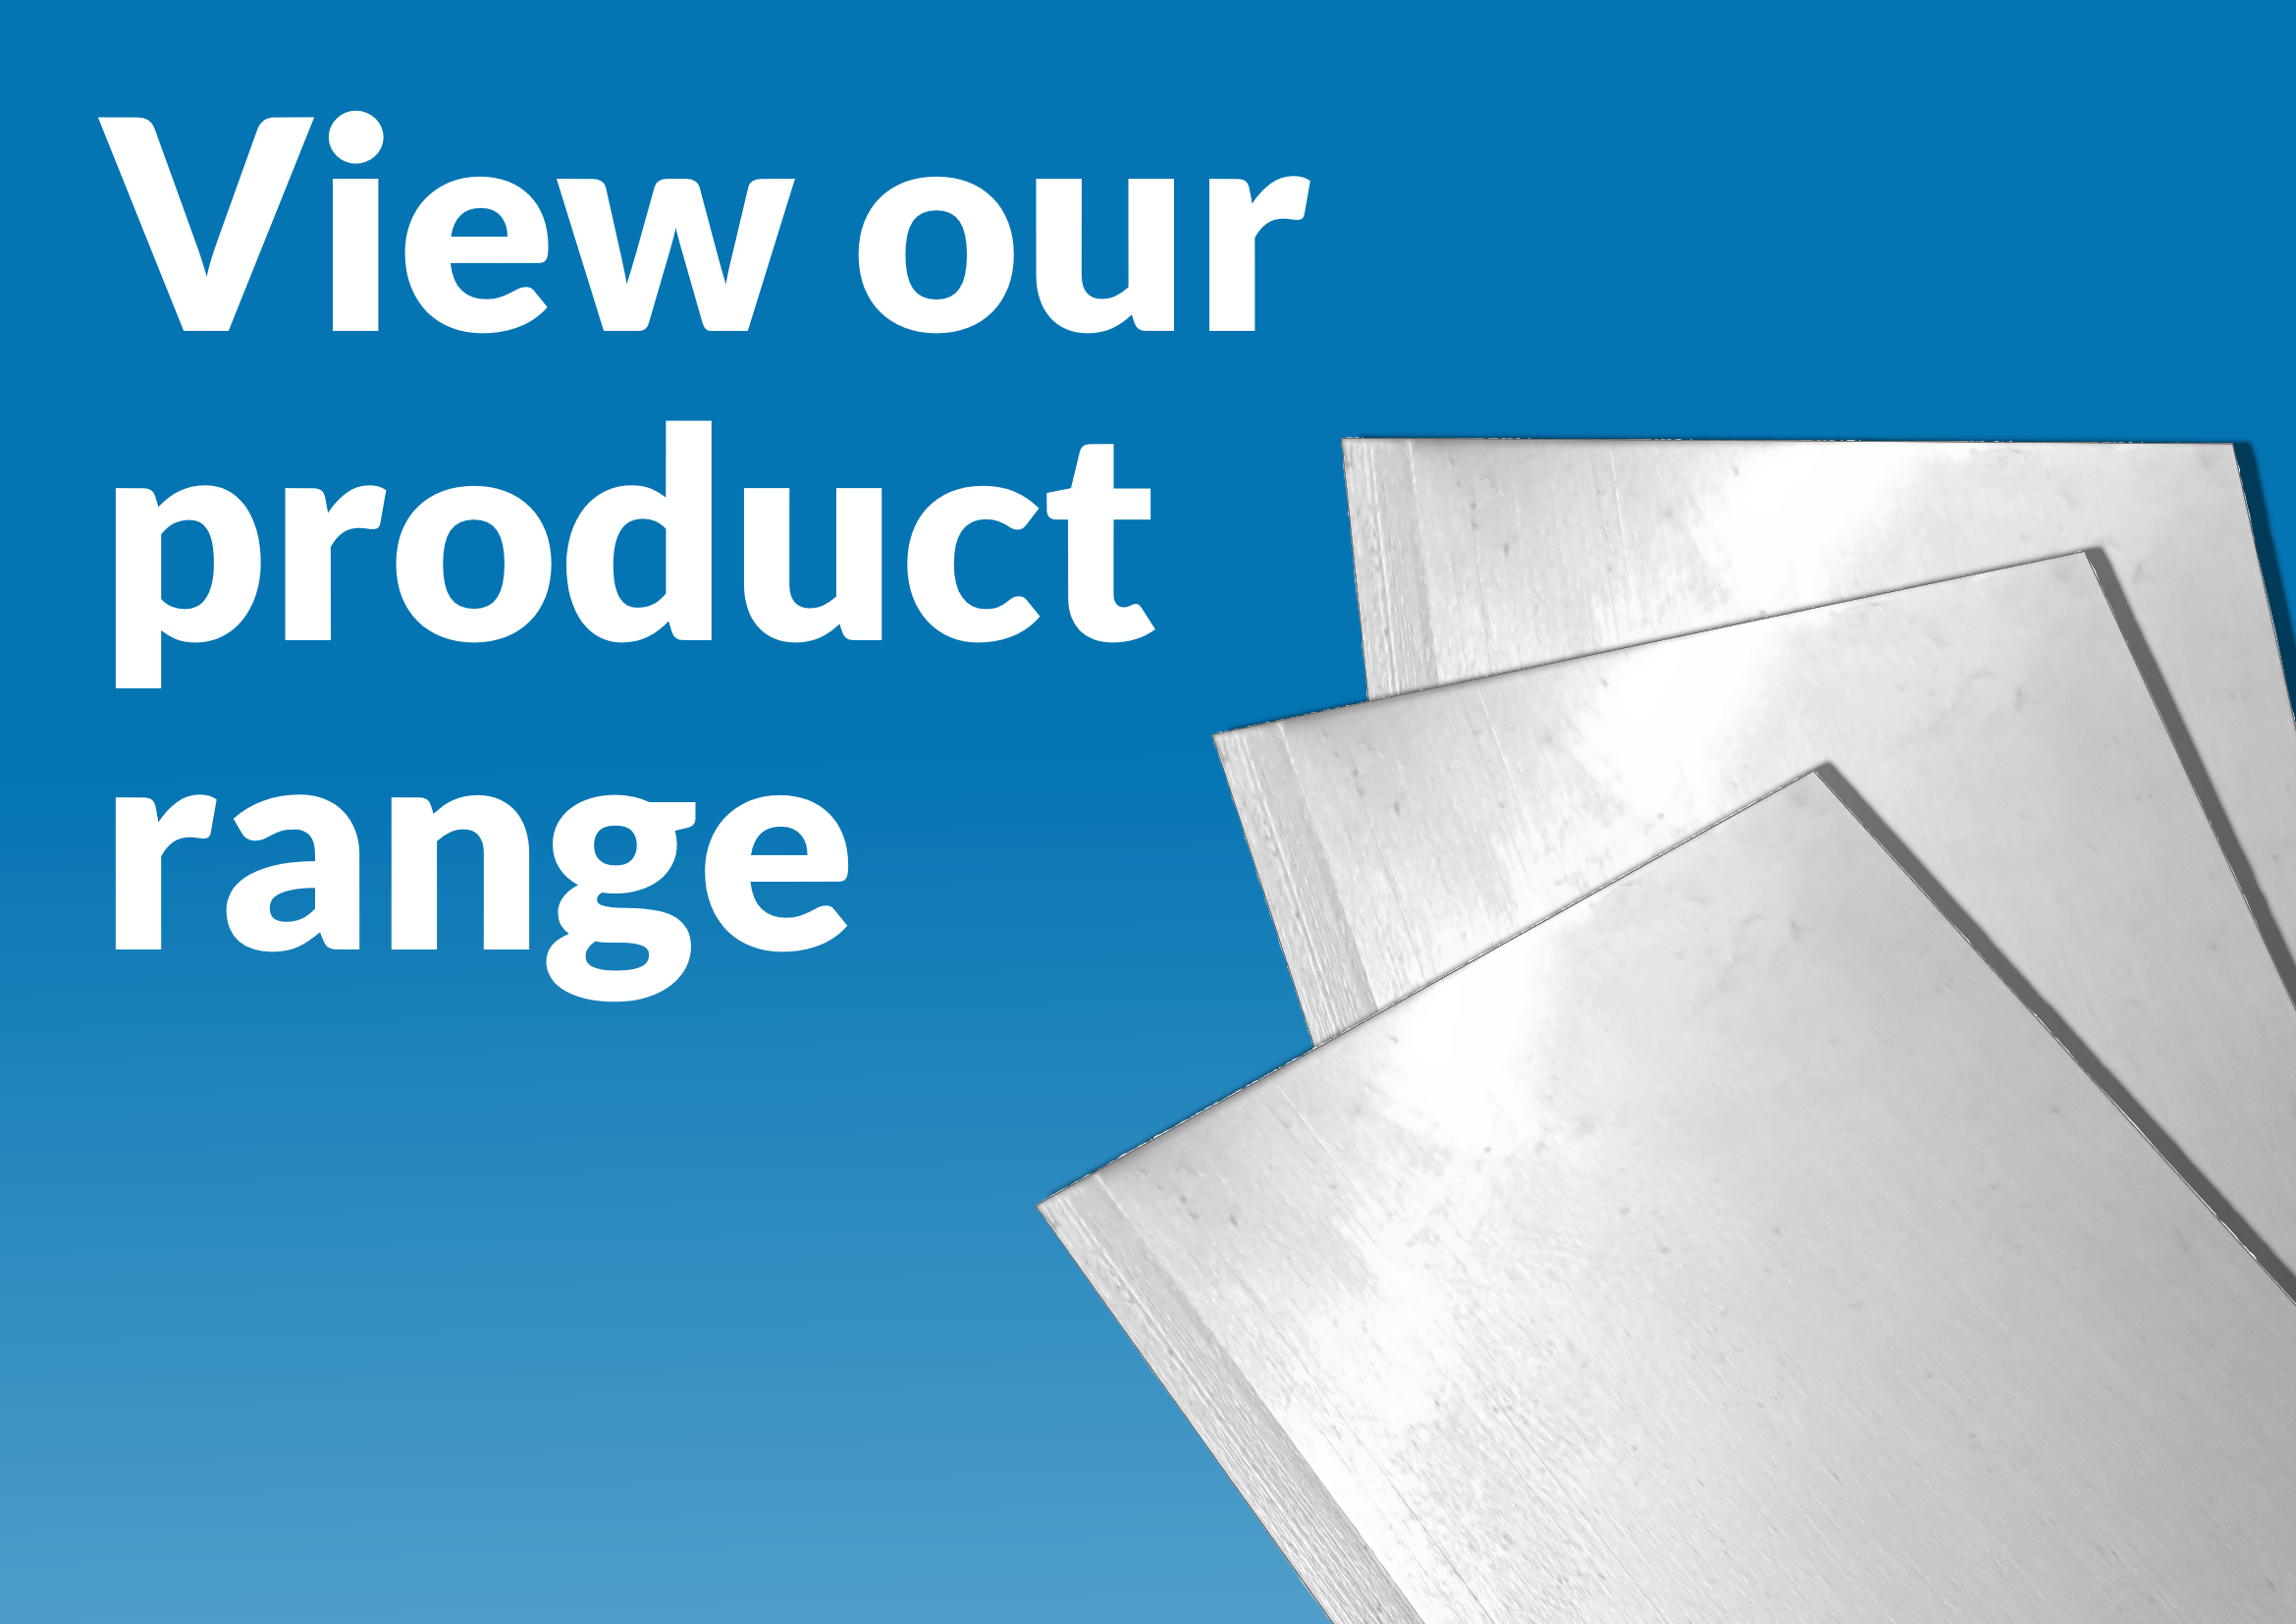 PrintBlade - UK Manufactured Doctor Blades in a range of materials and edge profiles